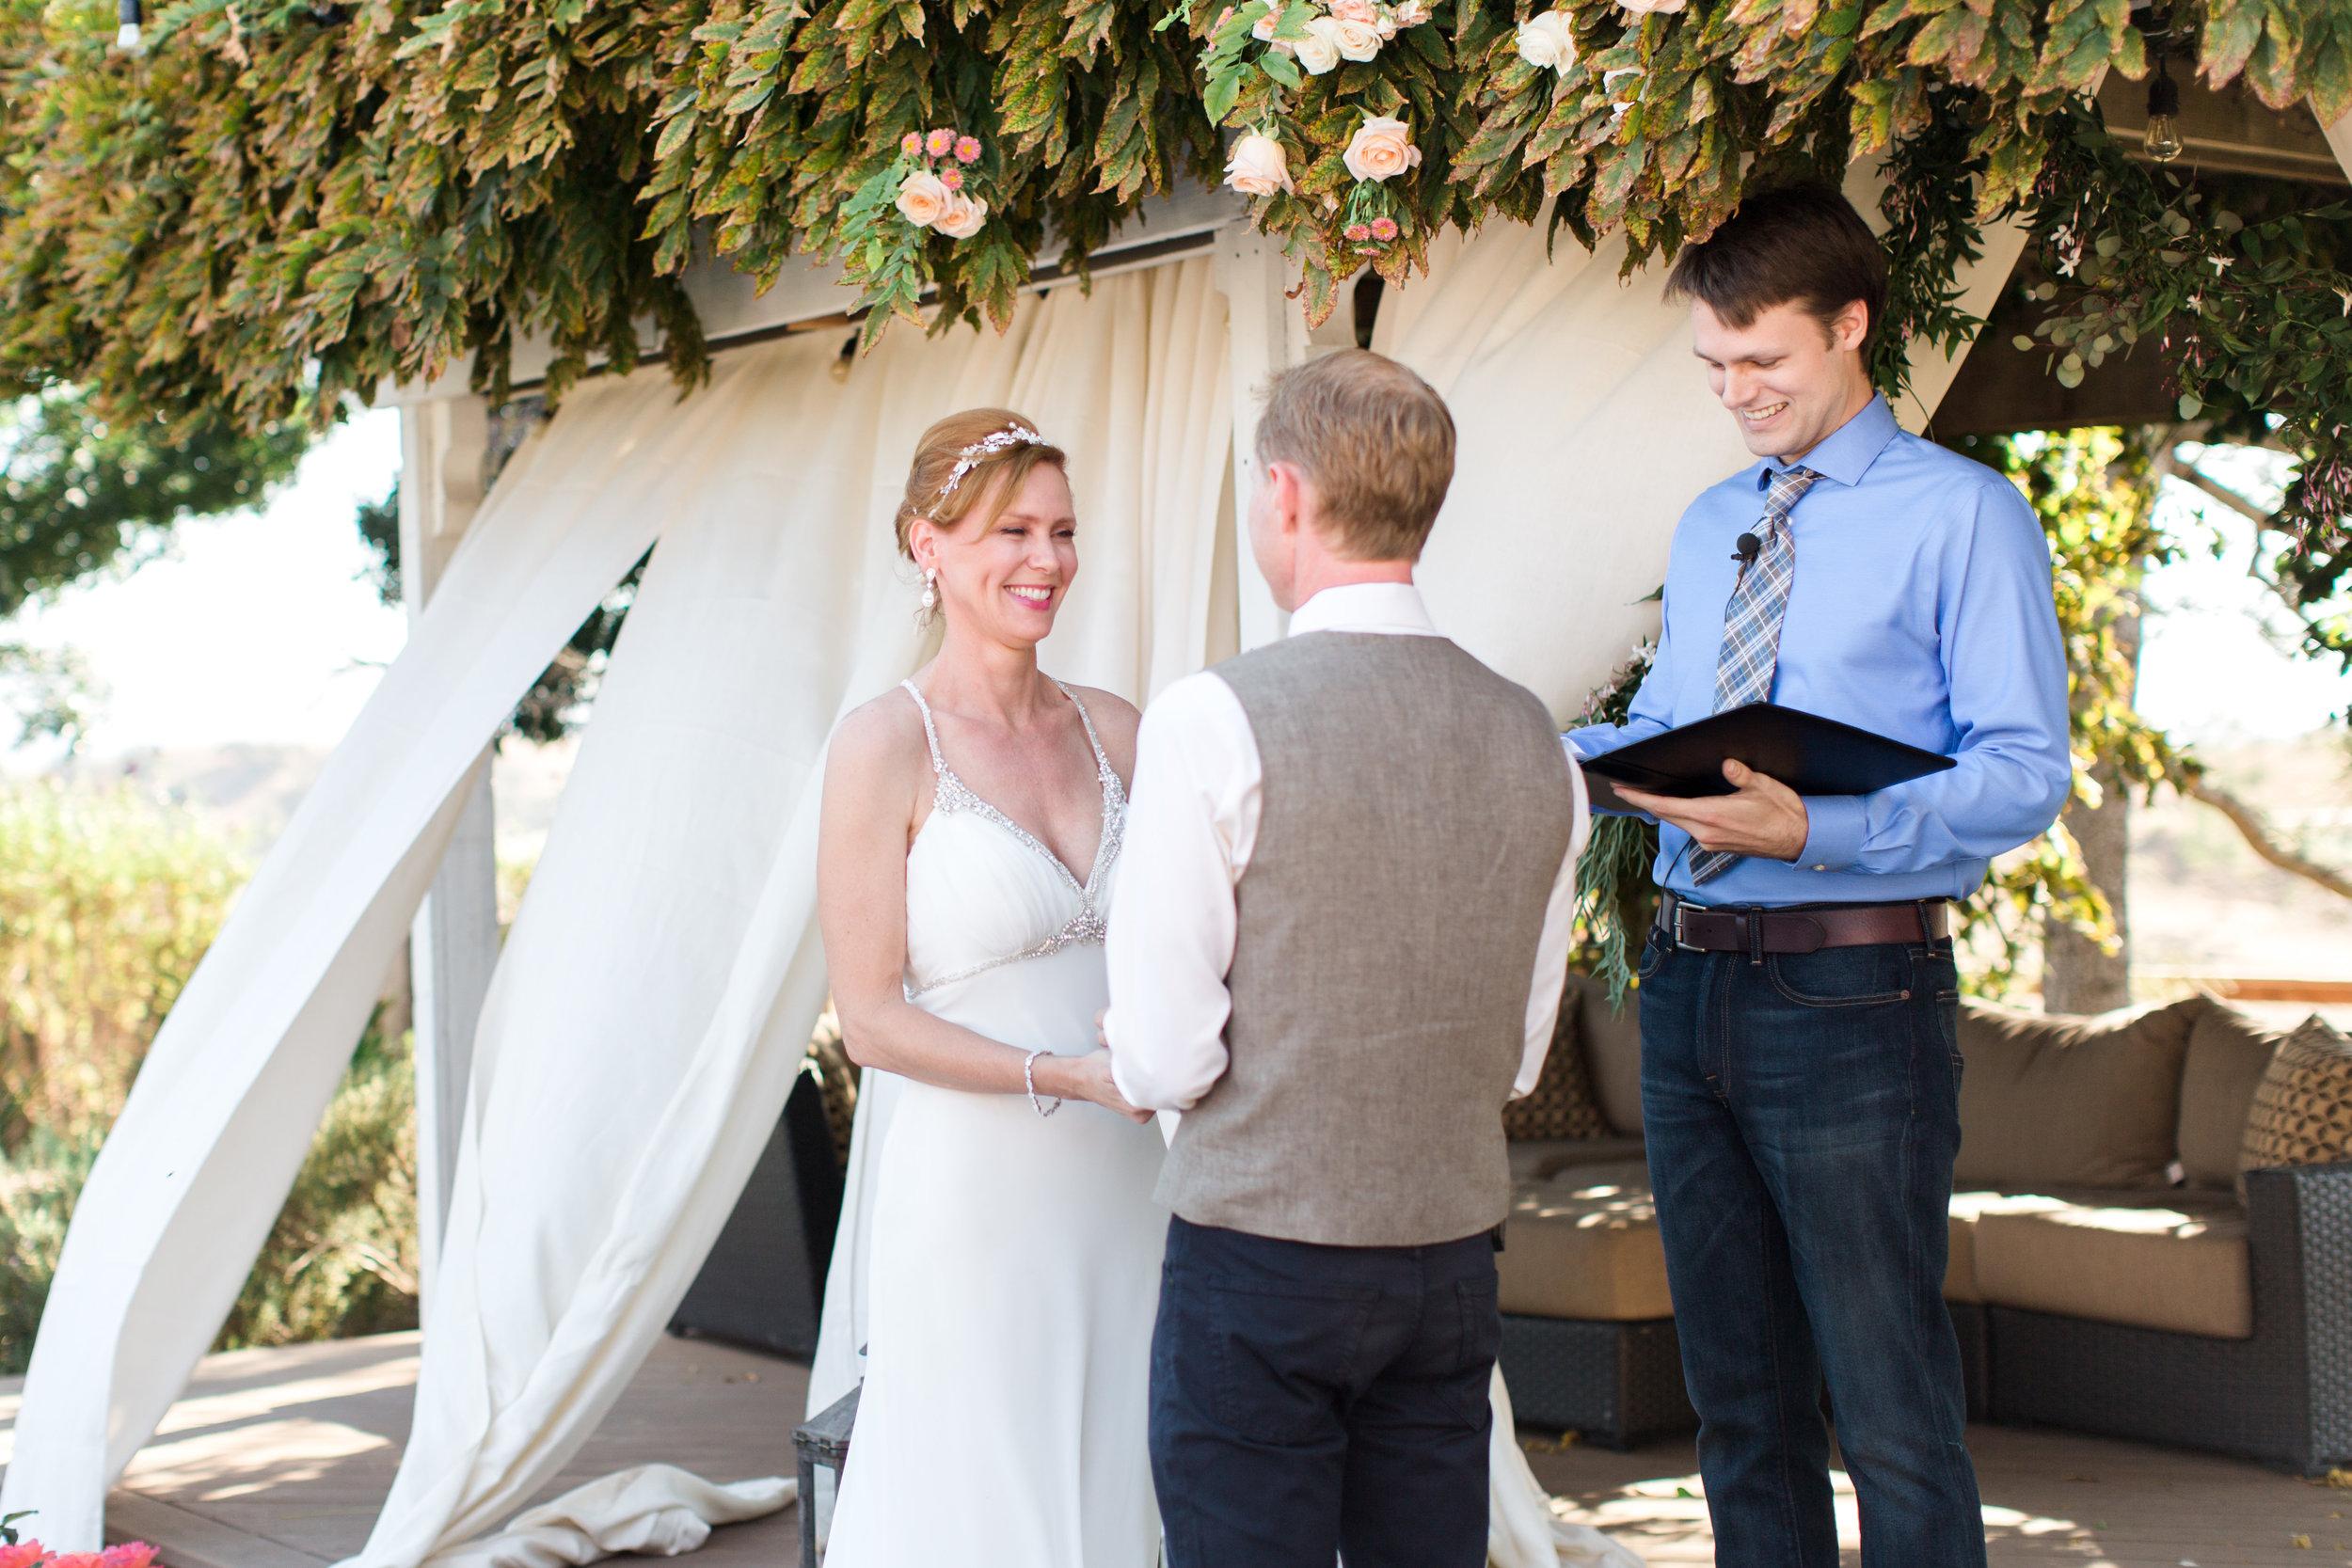 intimate-backyard-wedding-sonoma-california-18.jpg